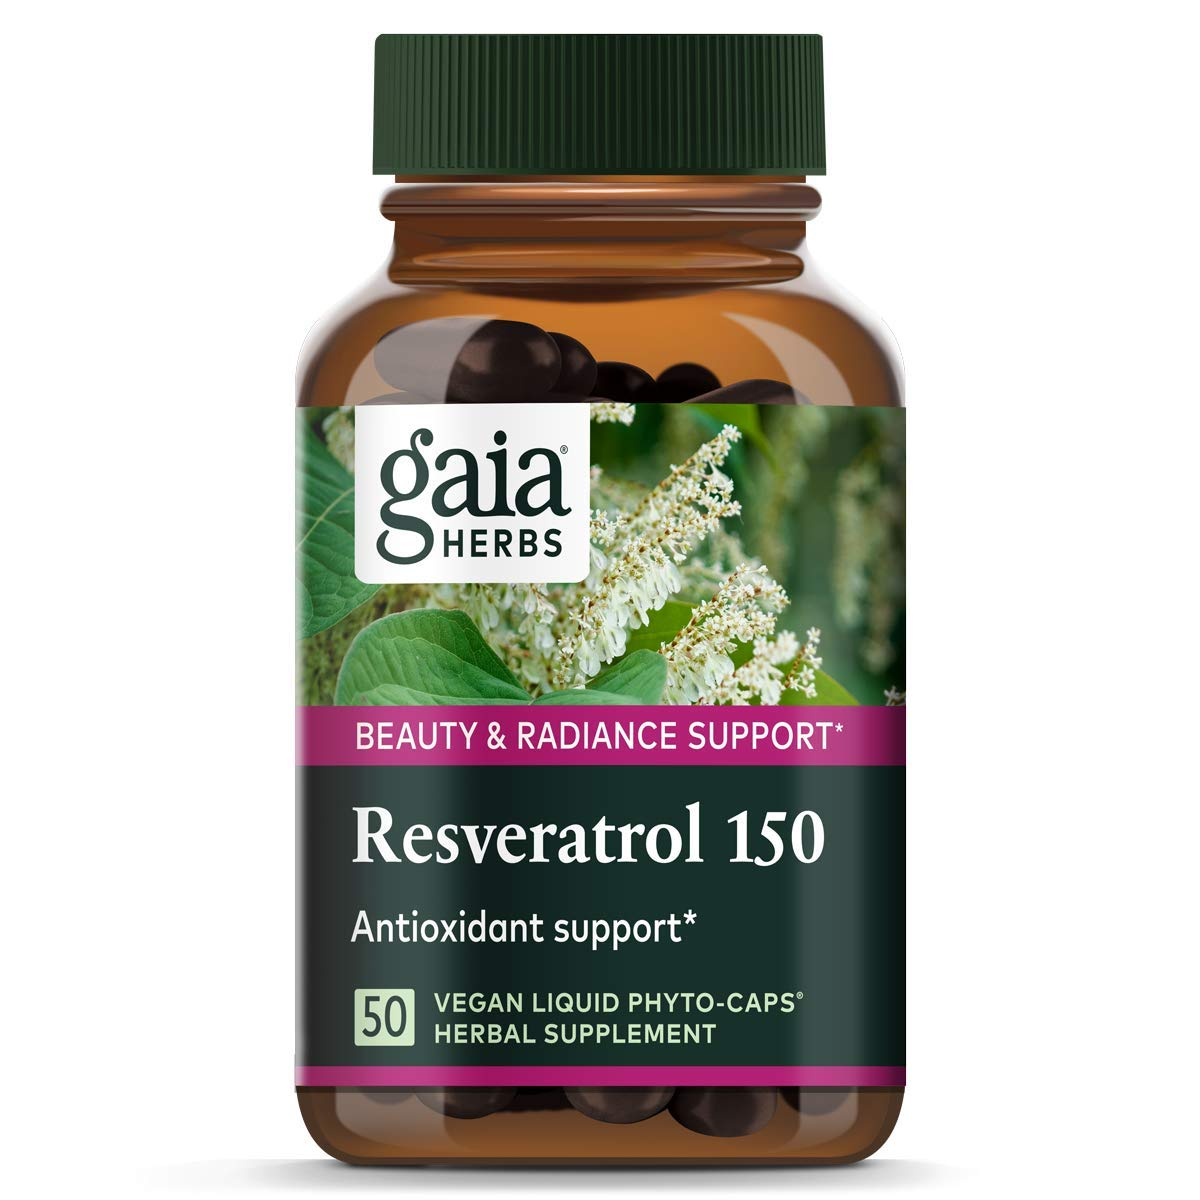 Gaia Herbs Resveratrol 150, Vegan Liquid Capsules, 50 Count - Antioxidant & Cardiovascular Support for Healthy Aging, Highly Concentrated Trans-Resveratrol by Gaia Herbs